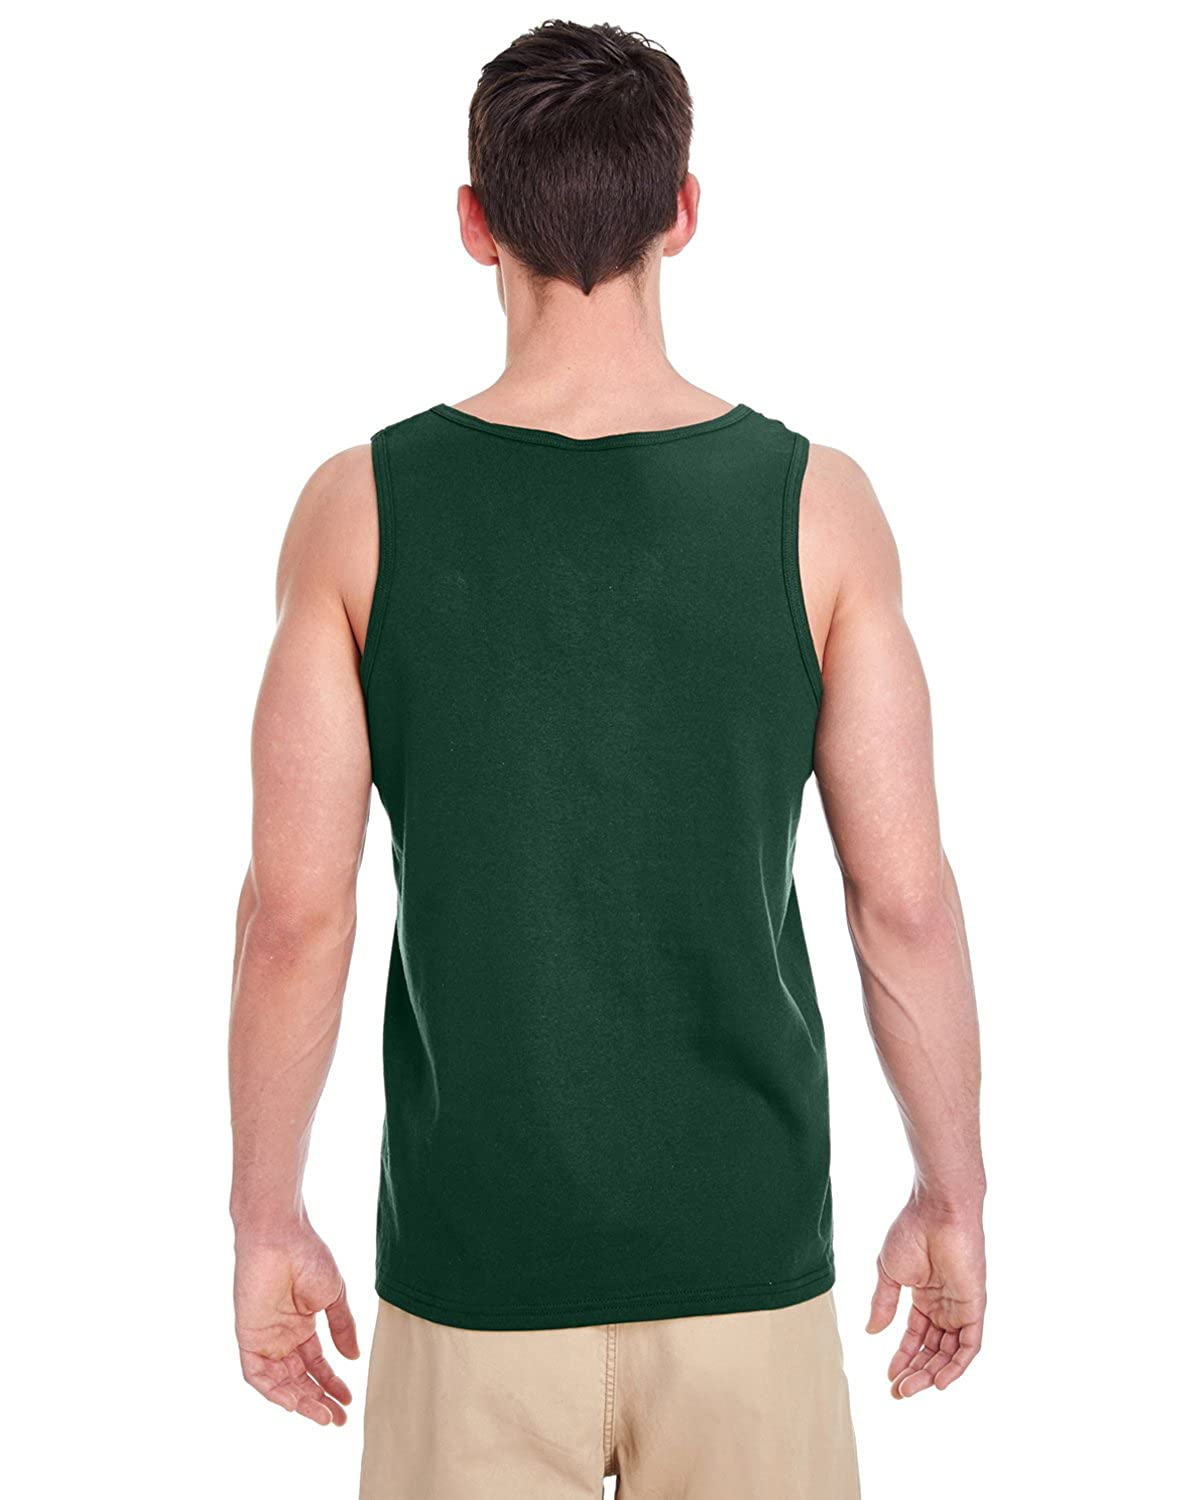 485447ce4c Gildan Heavy Cotton Tank Top. 5200 Forest Green at Amazon Men's Clothing  store: